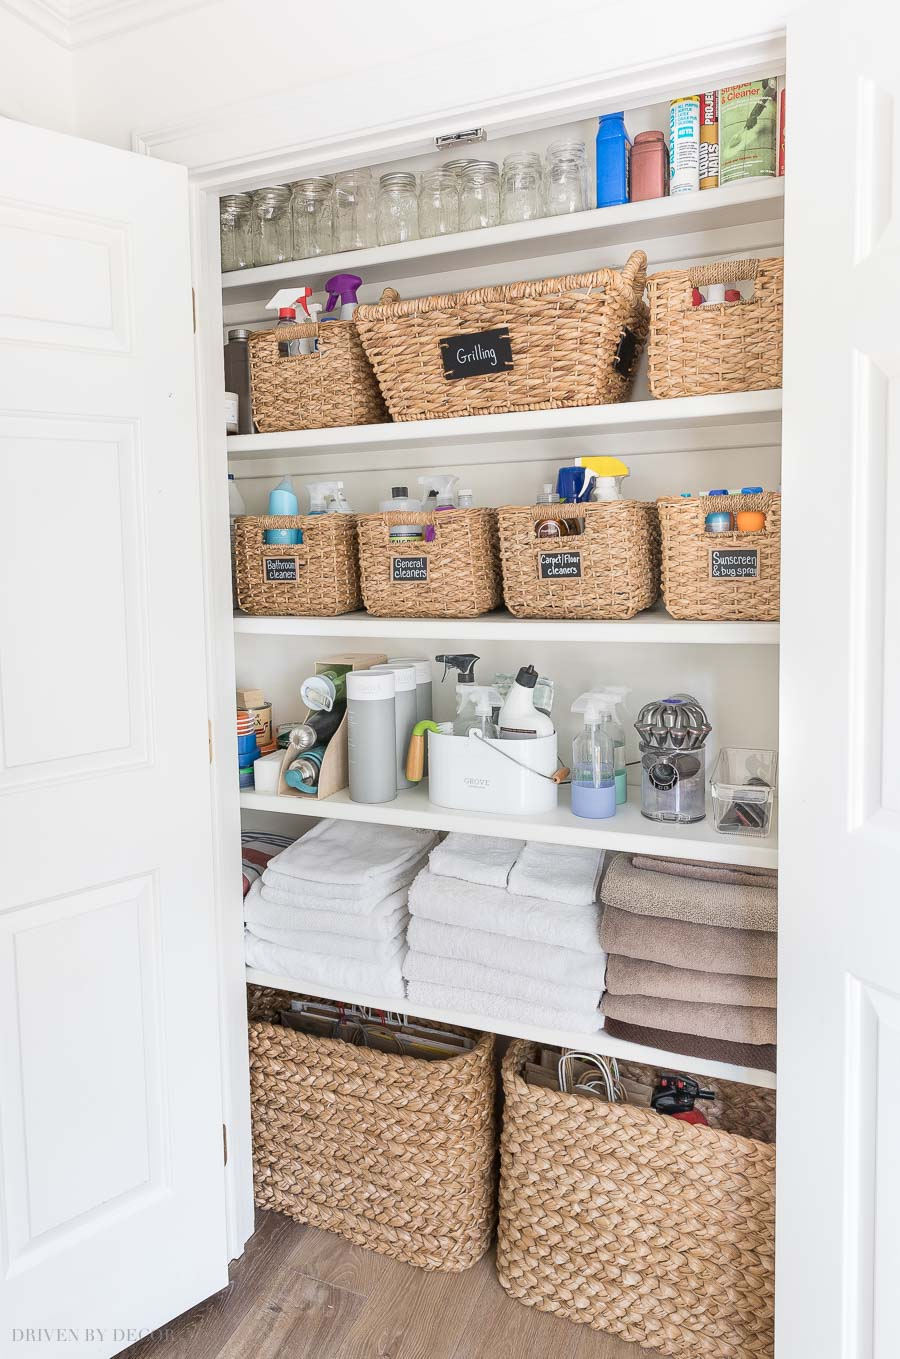 These small square seagrass baskets work so well for organizing my cleaning products so they're easy to find!